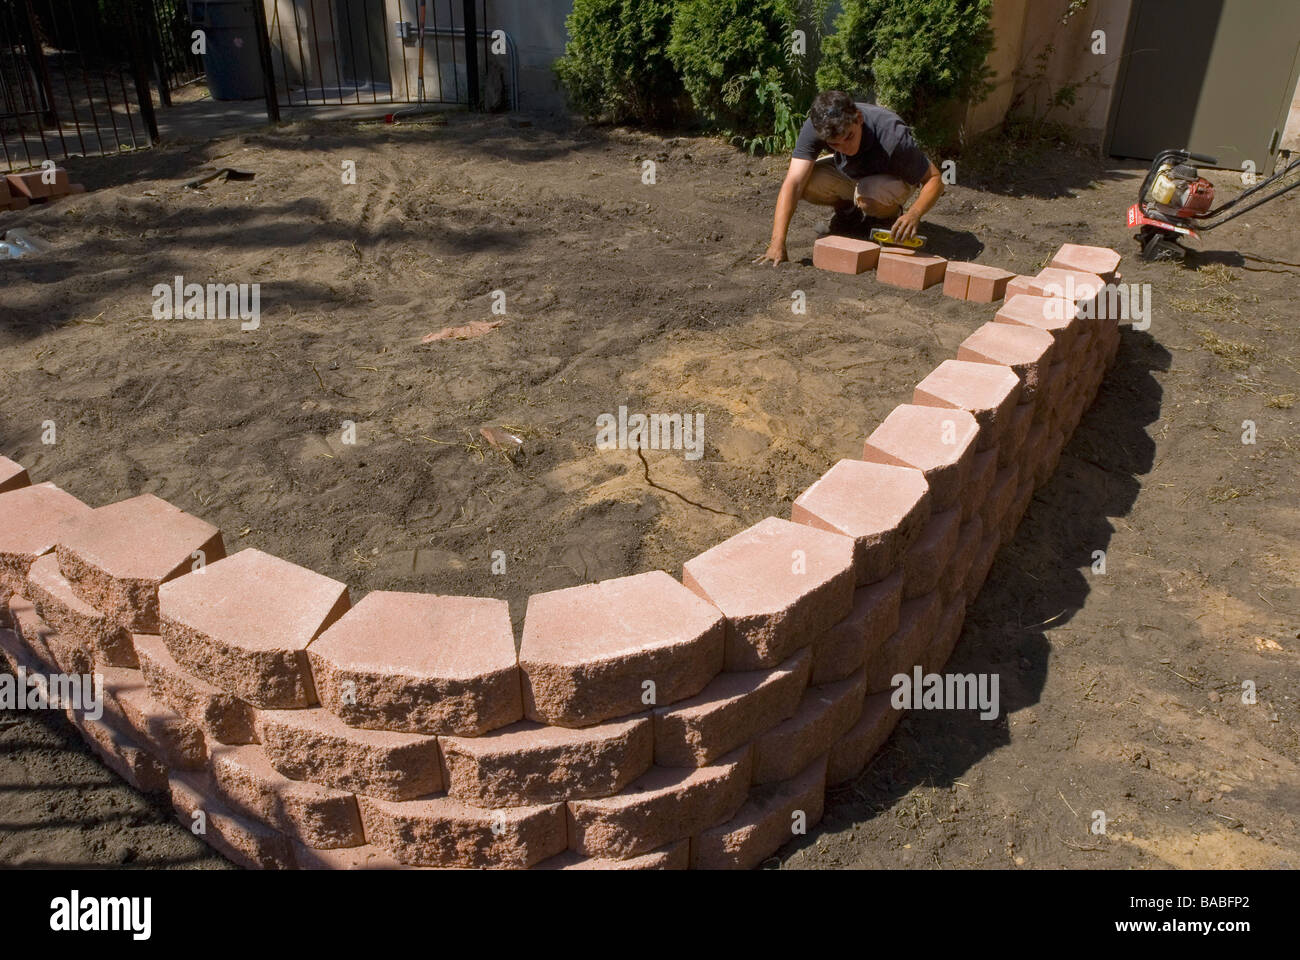 Man building flower box retaining wall with pavers for flower bed man building flower box retaining wall with pavers for flower bed chicago illinois amipublicfo Image collections